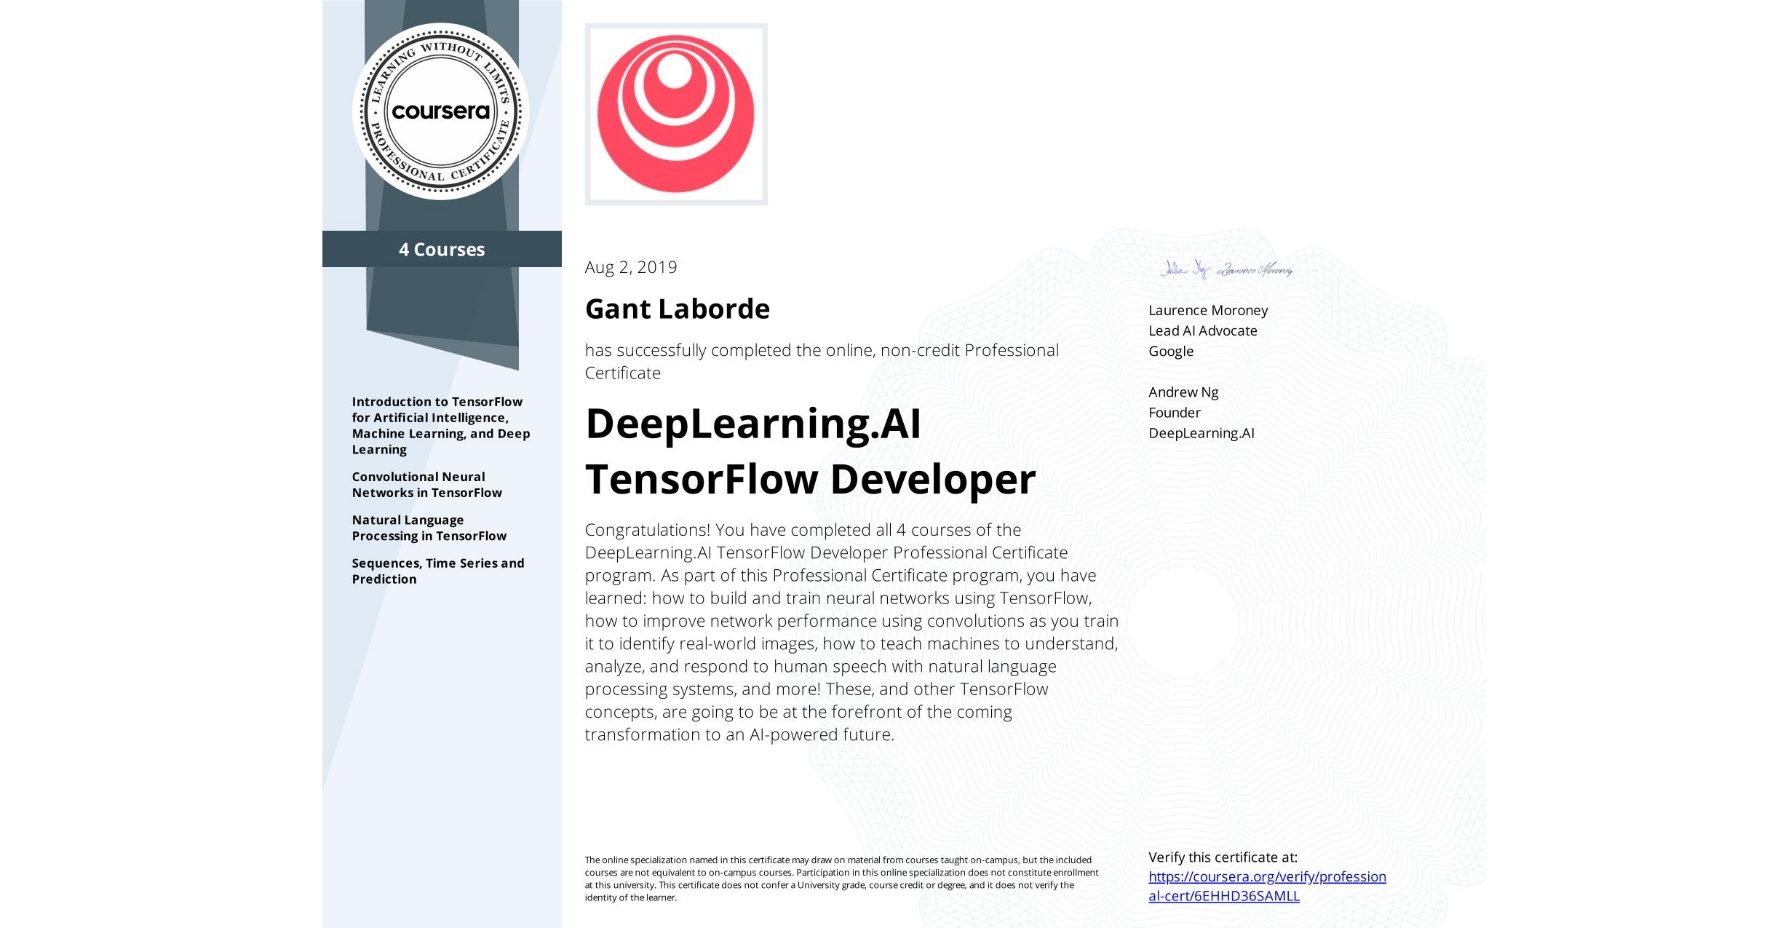 View certificate for Gant Laborde, DeepLearning.AI TensorFlow Developer, offered through Coursera. Congratulations! You have completed all 4 courses of the DeepLearning.AI TensorFlow Developer Professional Certificate program.   As part of this Professional Certificate program, you have learned: how to build and train neural networks using TensorFlow, how to improve network performance using convolutions as you train it to identify real-world images, how to teach machines to understand, analyze, and respond to human speech with natural language processing systems, and more!  These, and other TensorFlow concepts, are going to be at the forefront of the coming transformation to an AI-powered future.